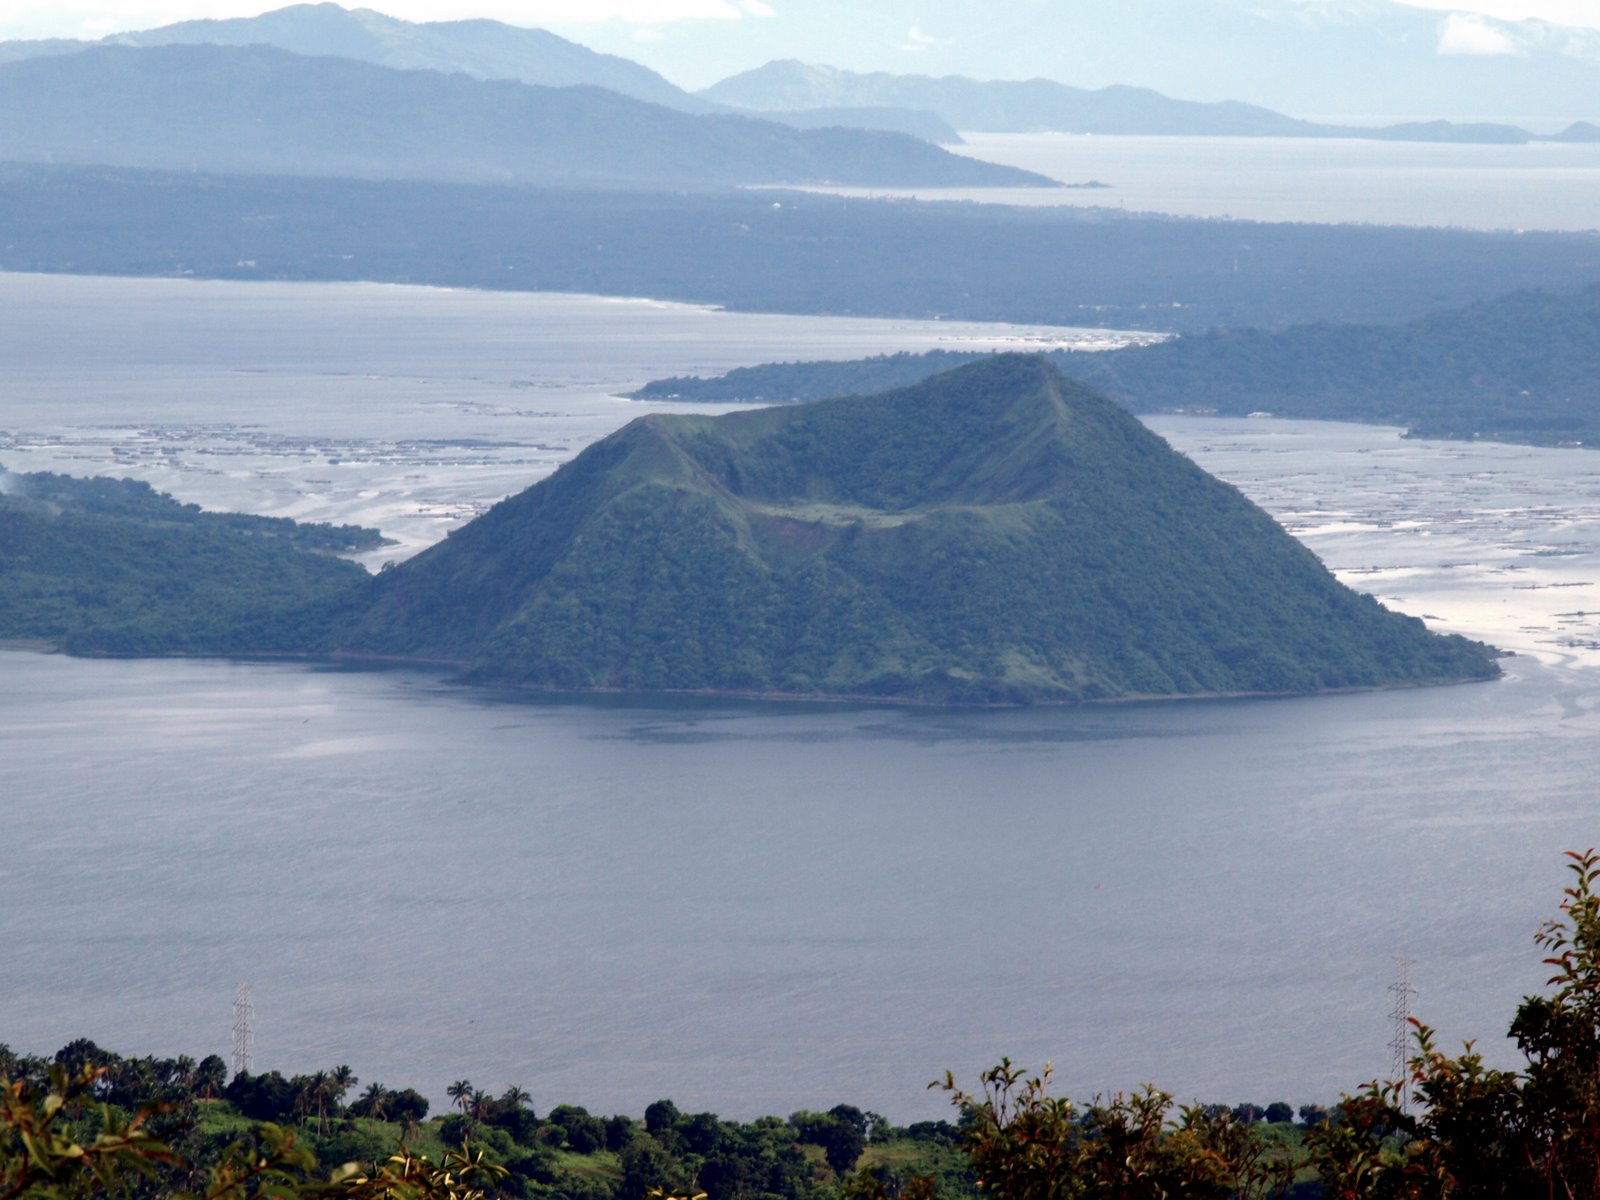 Taal Volcano: View from Picnic Grove Tagaytay